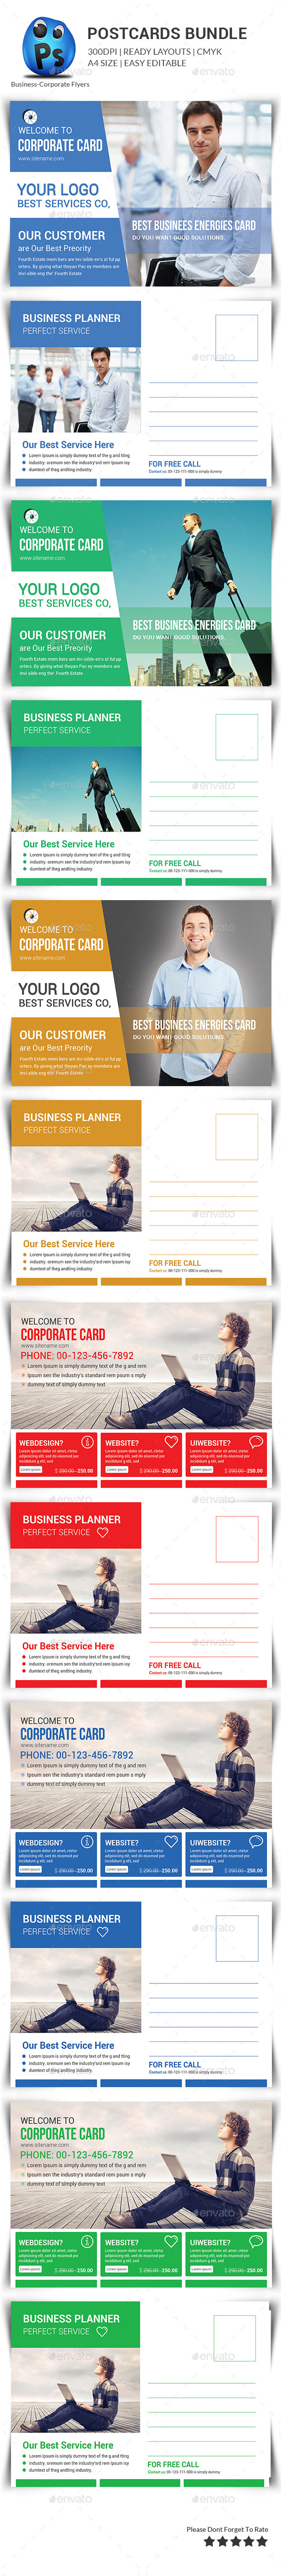 Corporate Business Postcard Bundle - Cards & Invites Print Templates